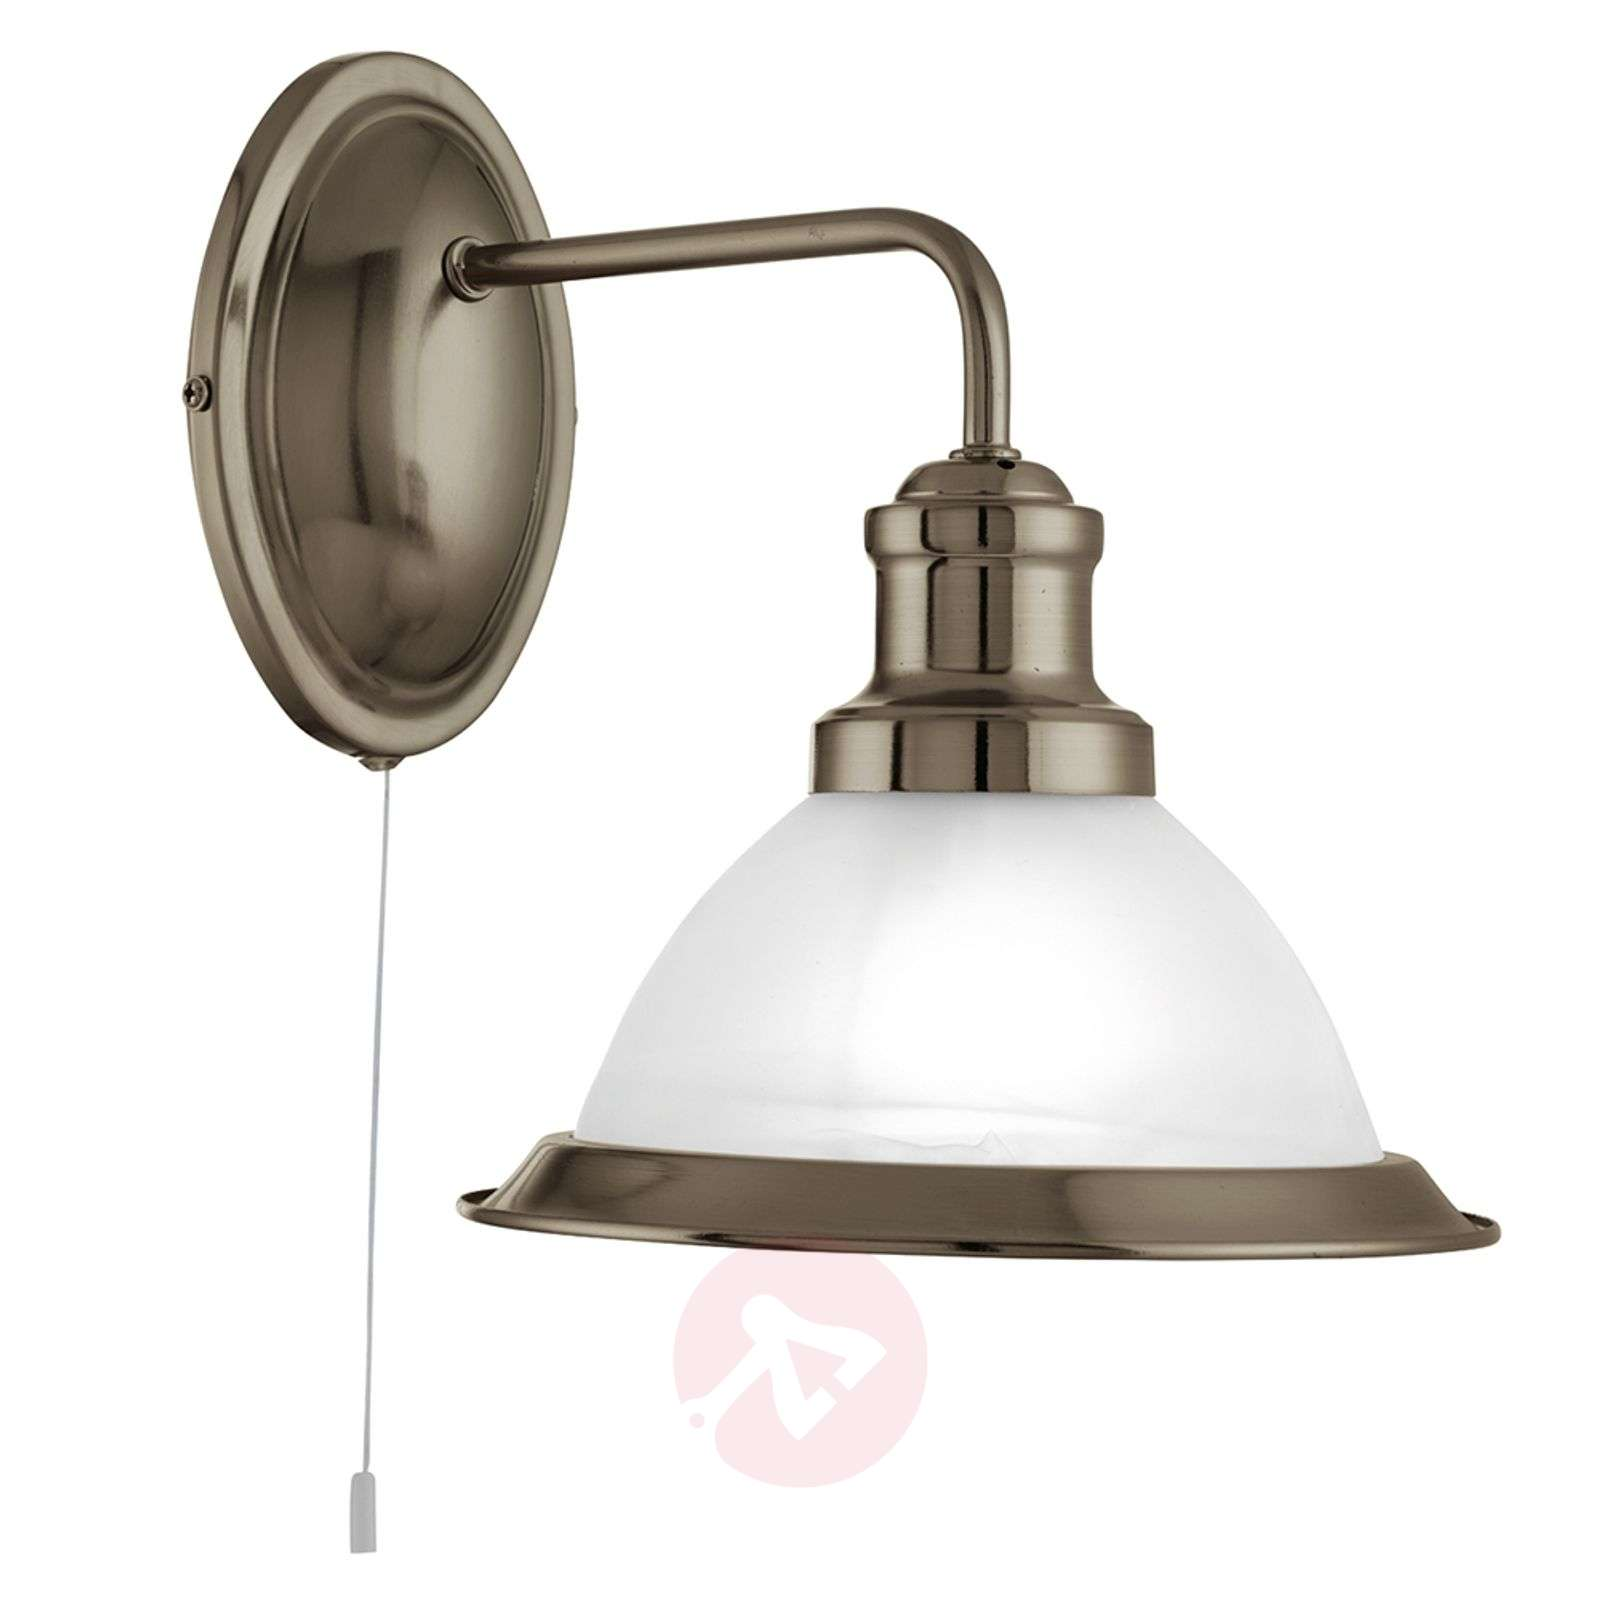 Wonderful design: Bistro antique look wall light-8570909-01